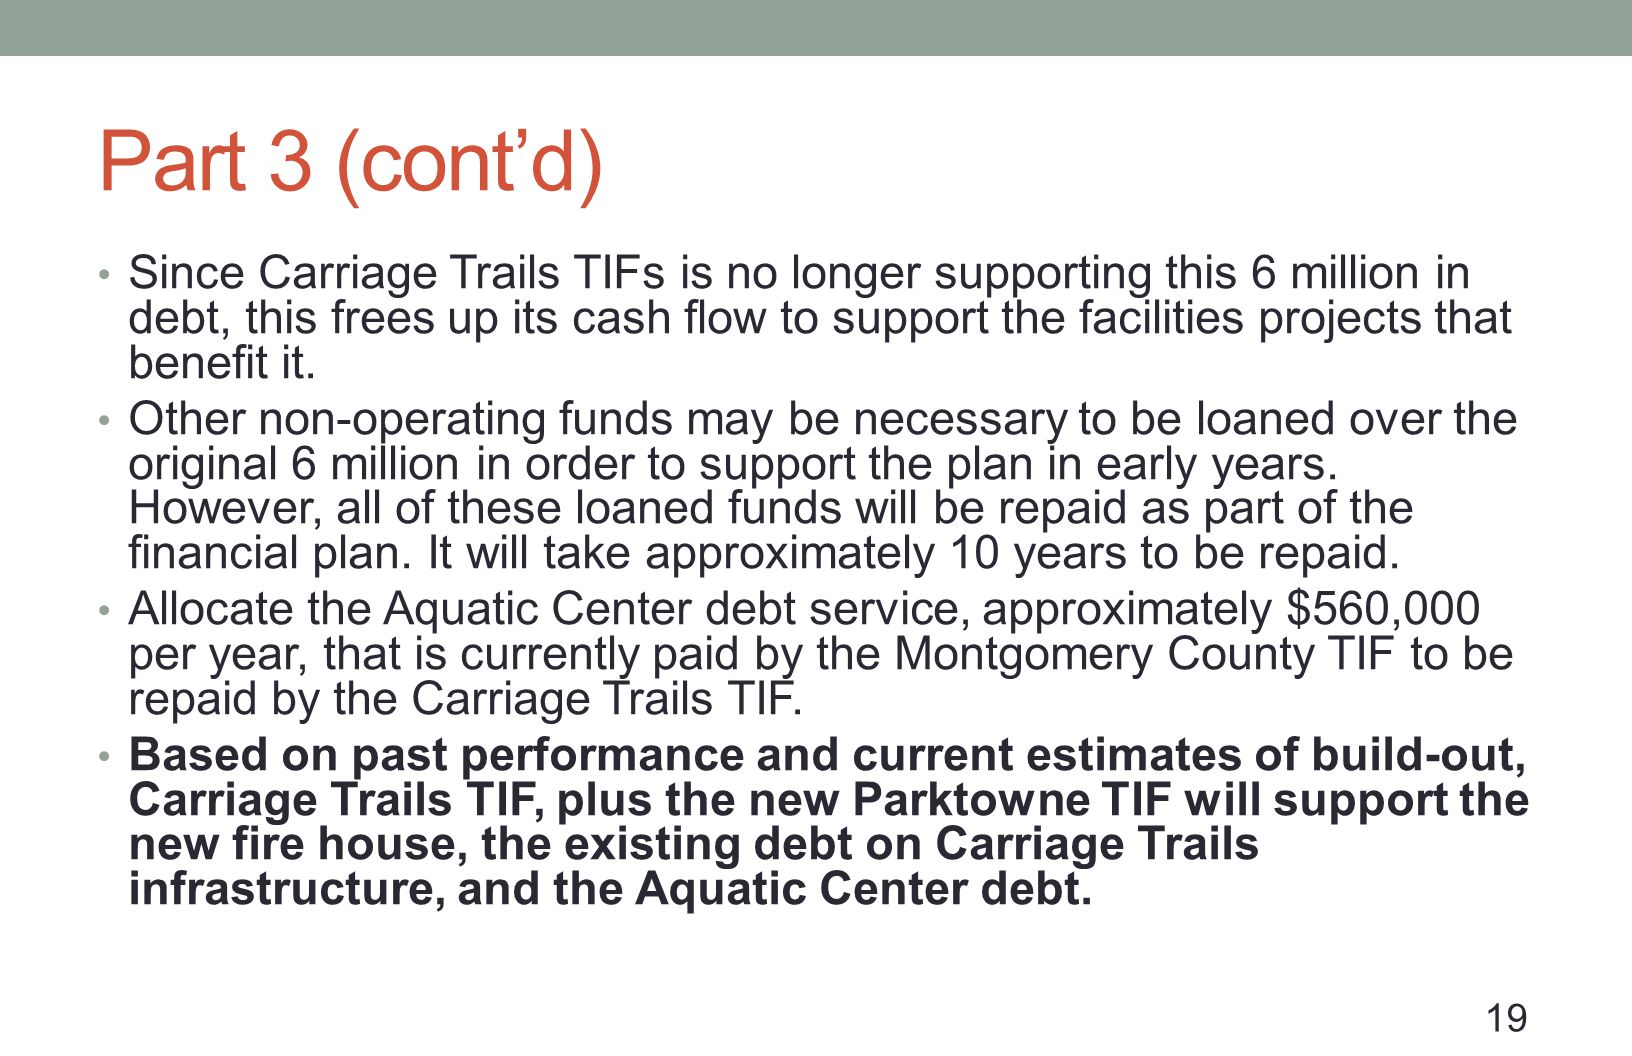 Part 3 (contd) Since Carriage Trails TIFs is no longer supporting this 6 million in debt, this frees up its cash flow to support the facilities projec